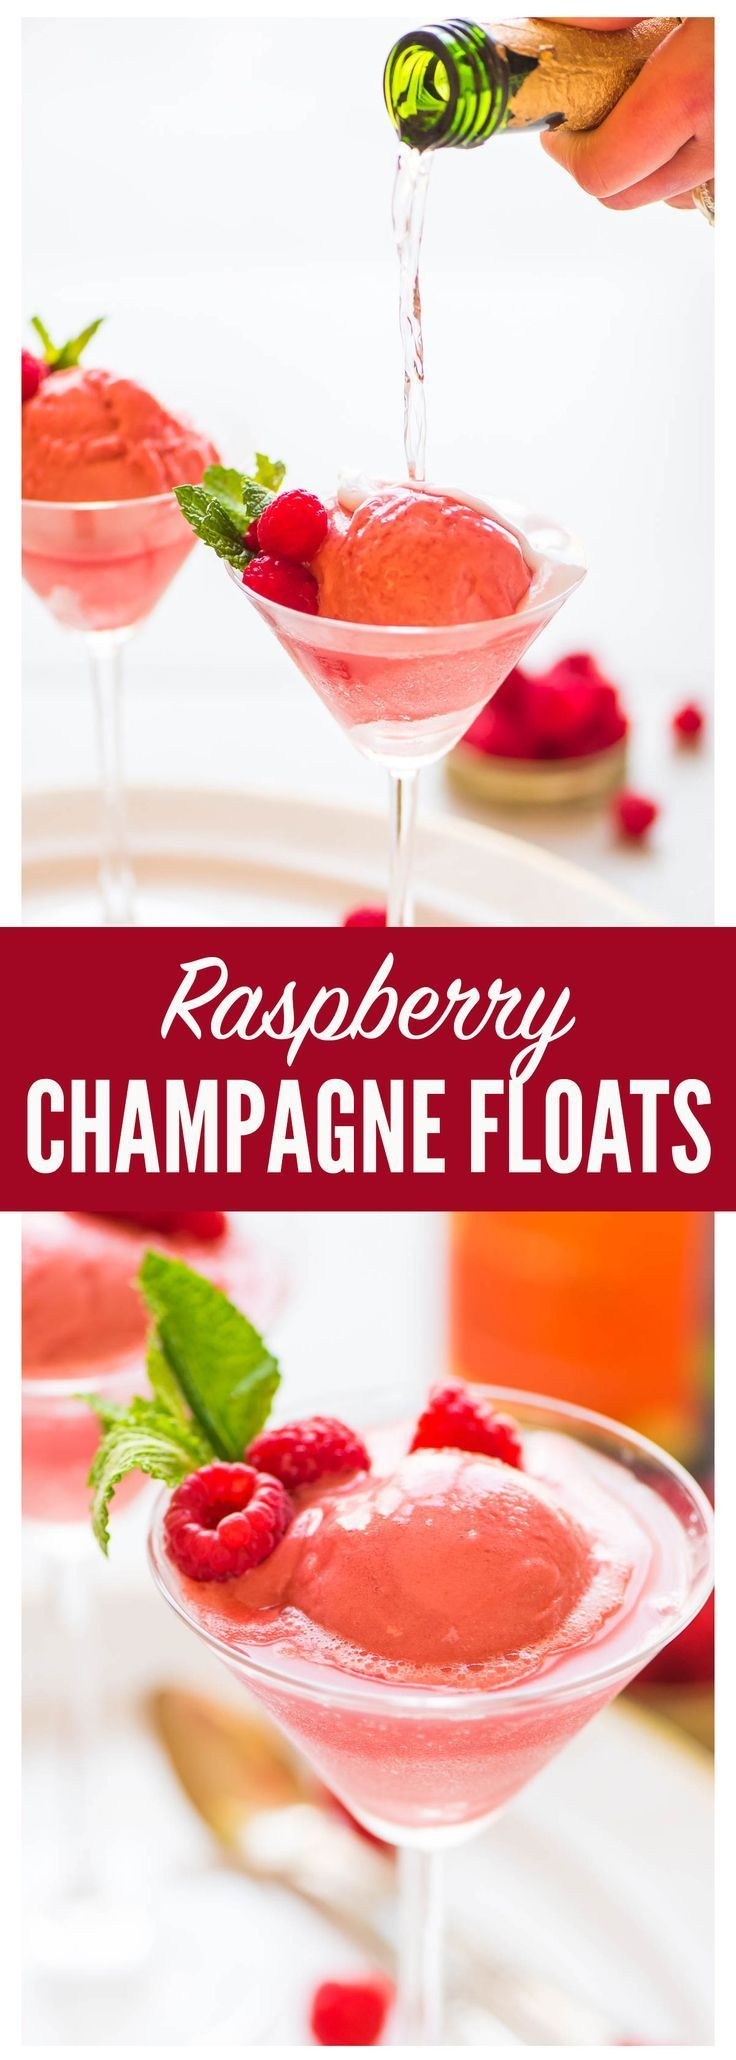 Raspberry Champagne Floats. TWO INGREDIENTS! A fun pink dessert-meets-cocktails for your next New Year's Eve, bachelorette party, bridal shower, or Valentine's Day. Recipe at wellplated.com   @Well Plated